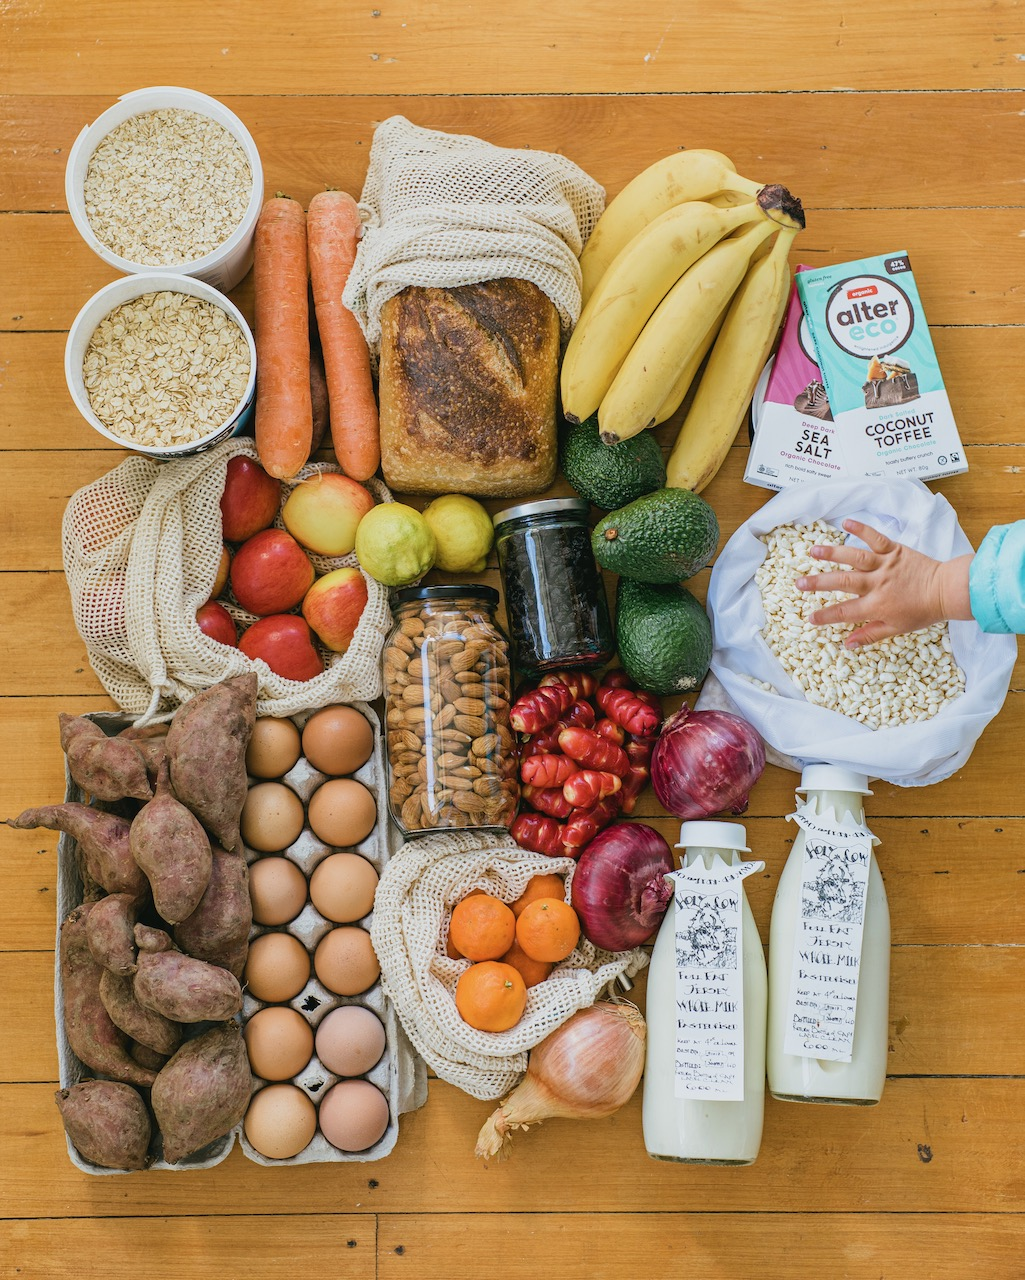 Healthy Gut Diet Tips To Live A Happy, Long Life